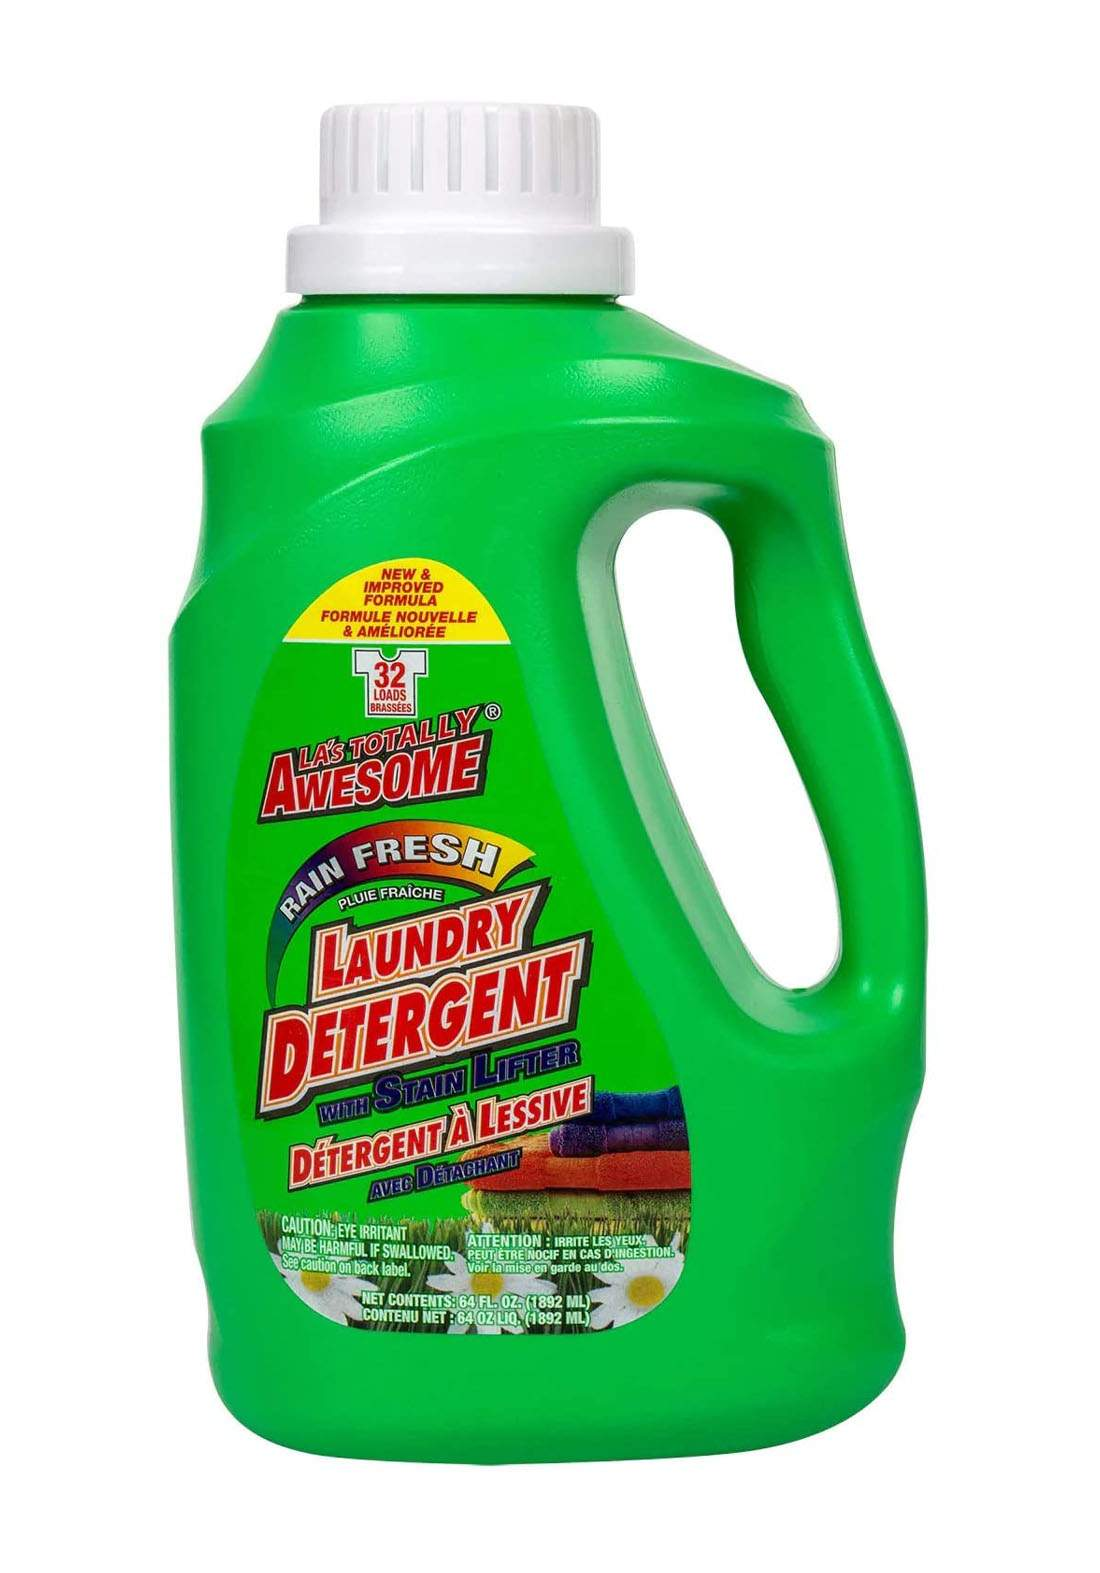 LA's Totally Awesome Laundry Detergent With Stain Lifter منظف